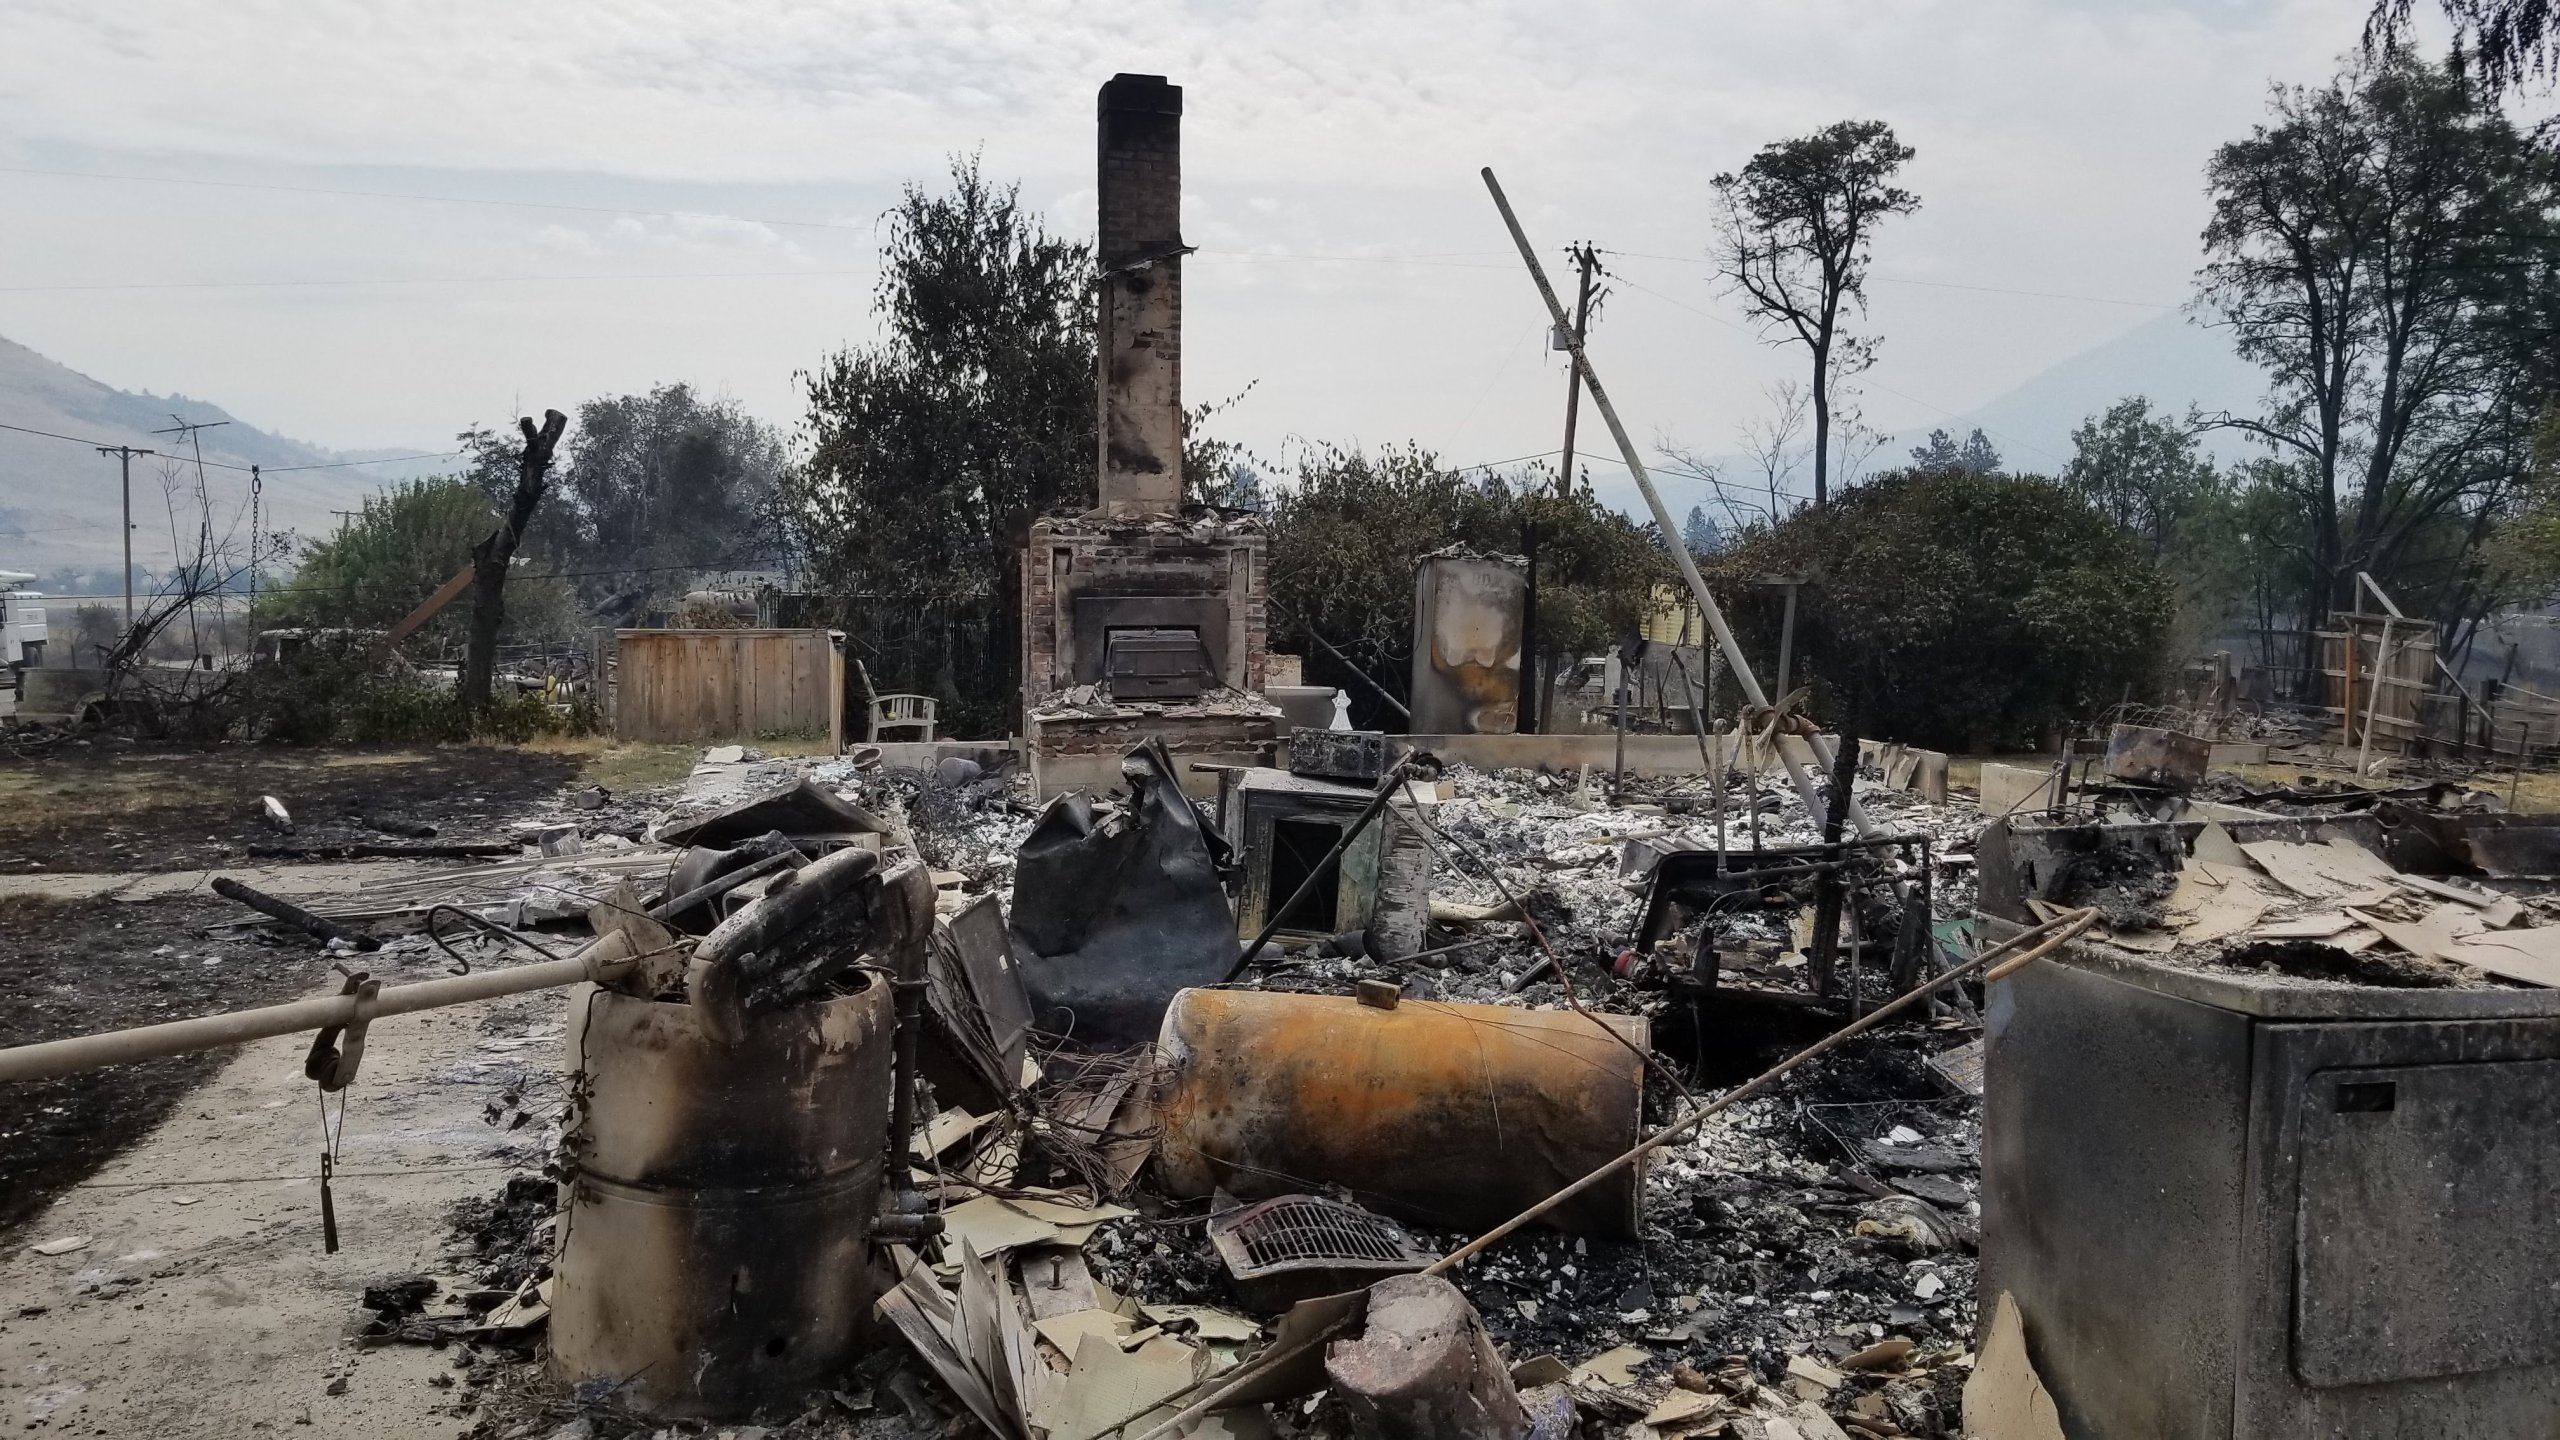 A photo shows the remnants of a home devoured by the Klamathon Fire in Hornbrook, Calif., on July 6, 2018. (Credit: Mario Montalvo/KHSL via CNN)